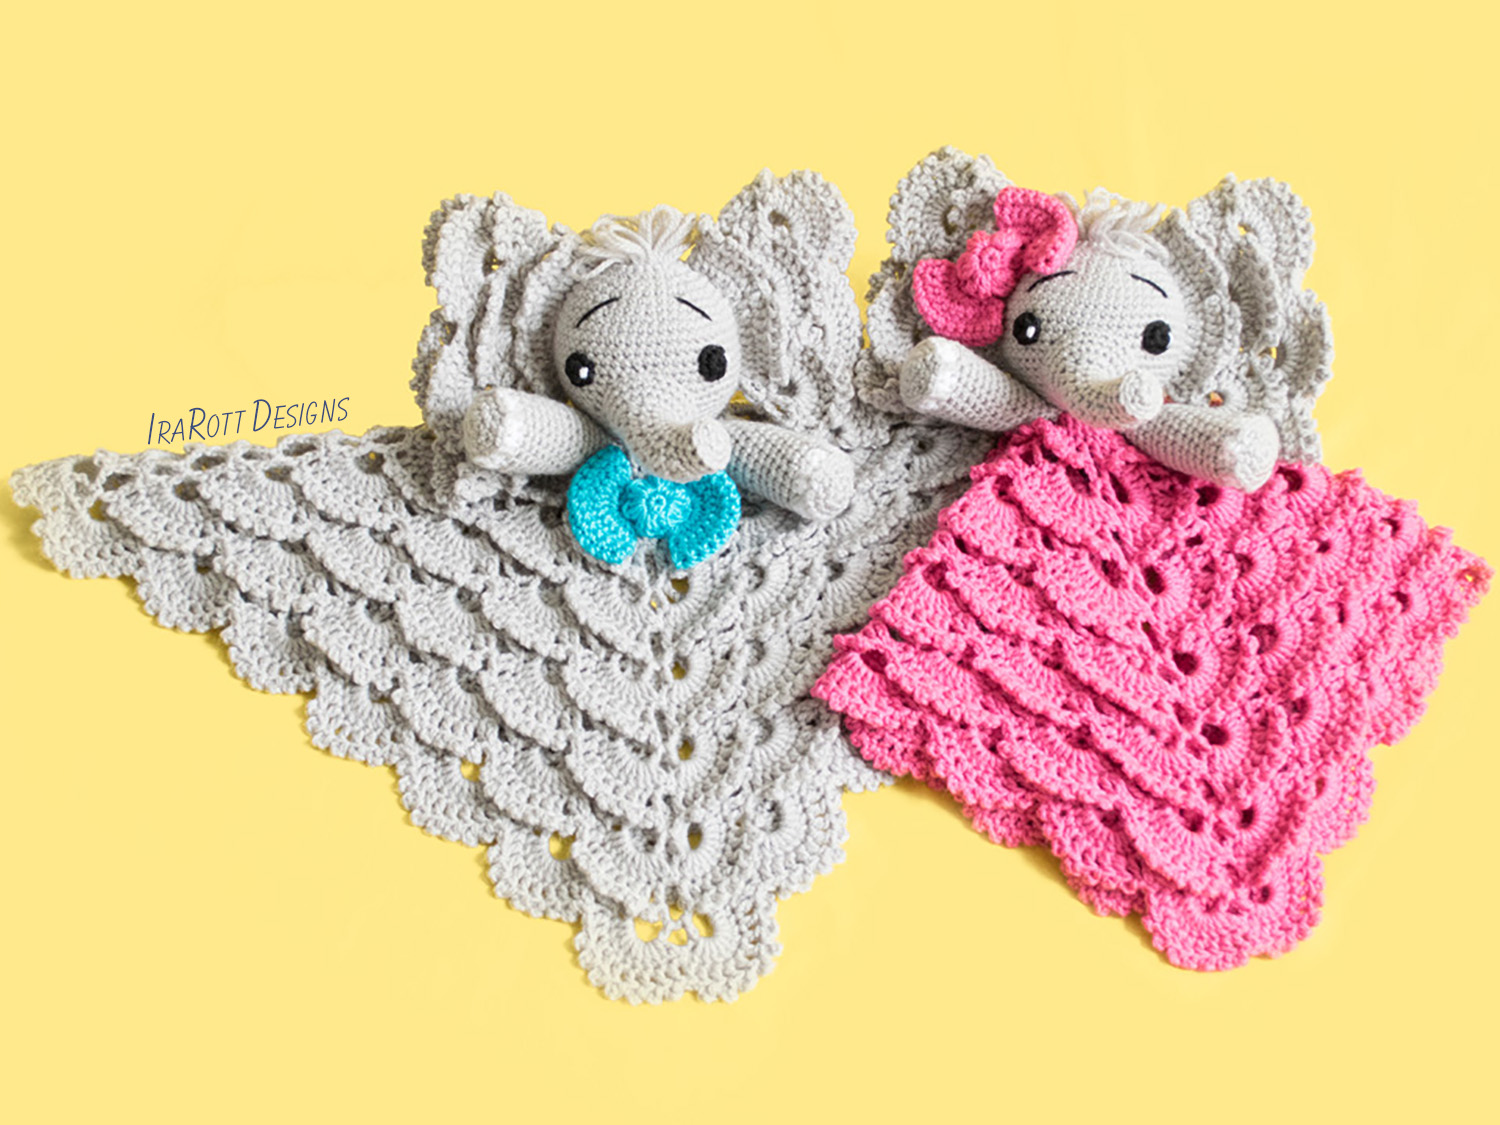 Crochet Elephant Blanket : Crochet Pattern PDF for making an adorable Elephant Lovey Security ...